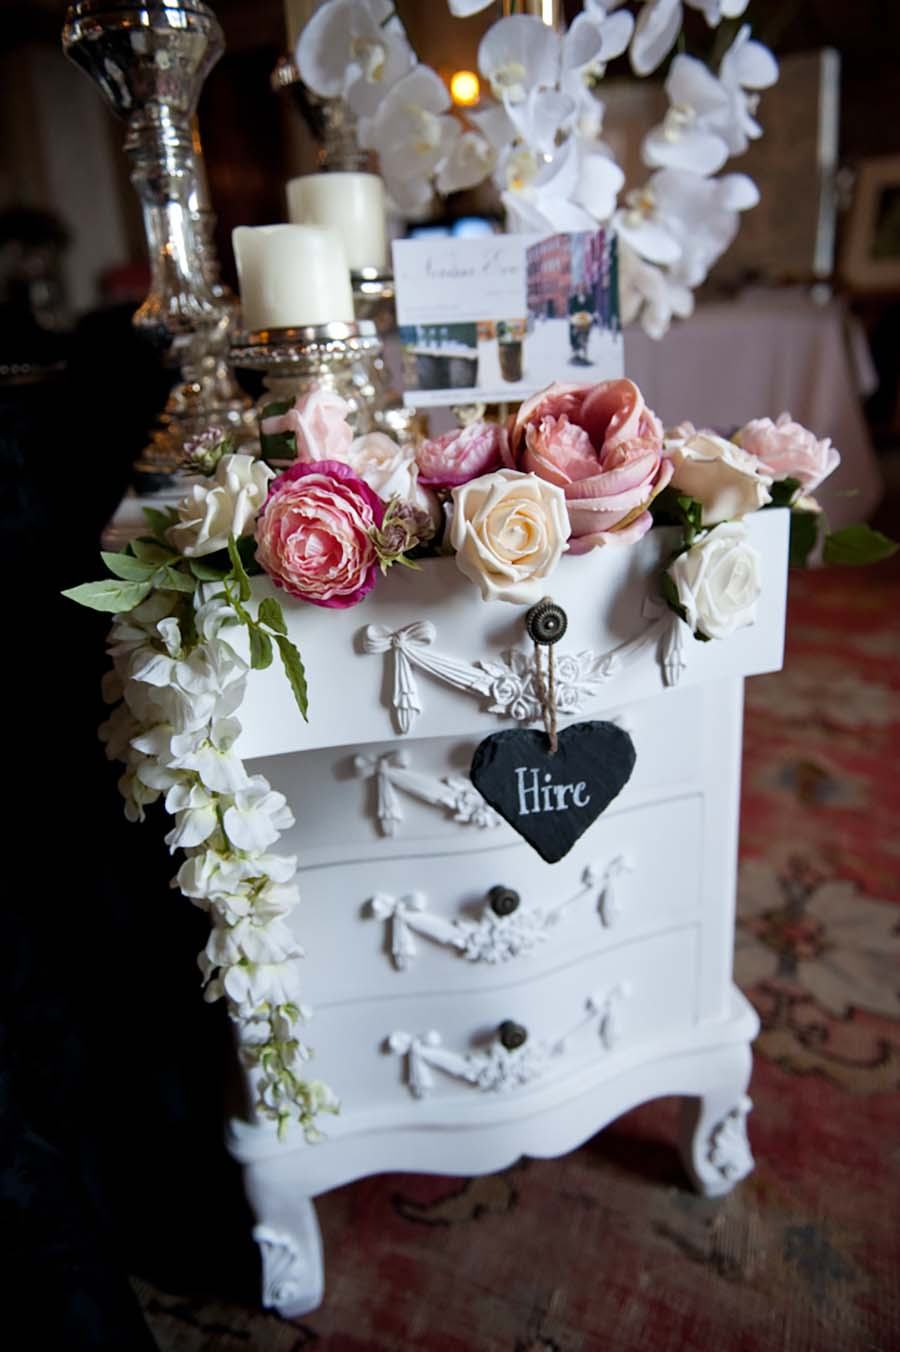 Buckinghams-at-belvoir-castle-wedding-fair-rachael-connerton-photography-120